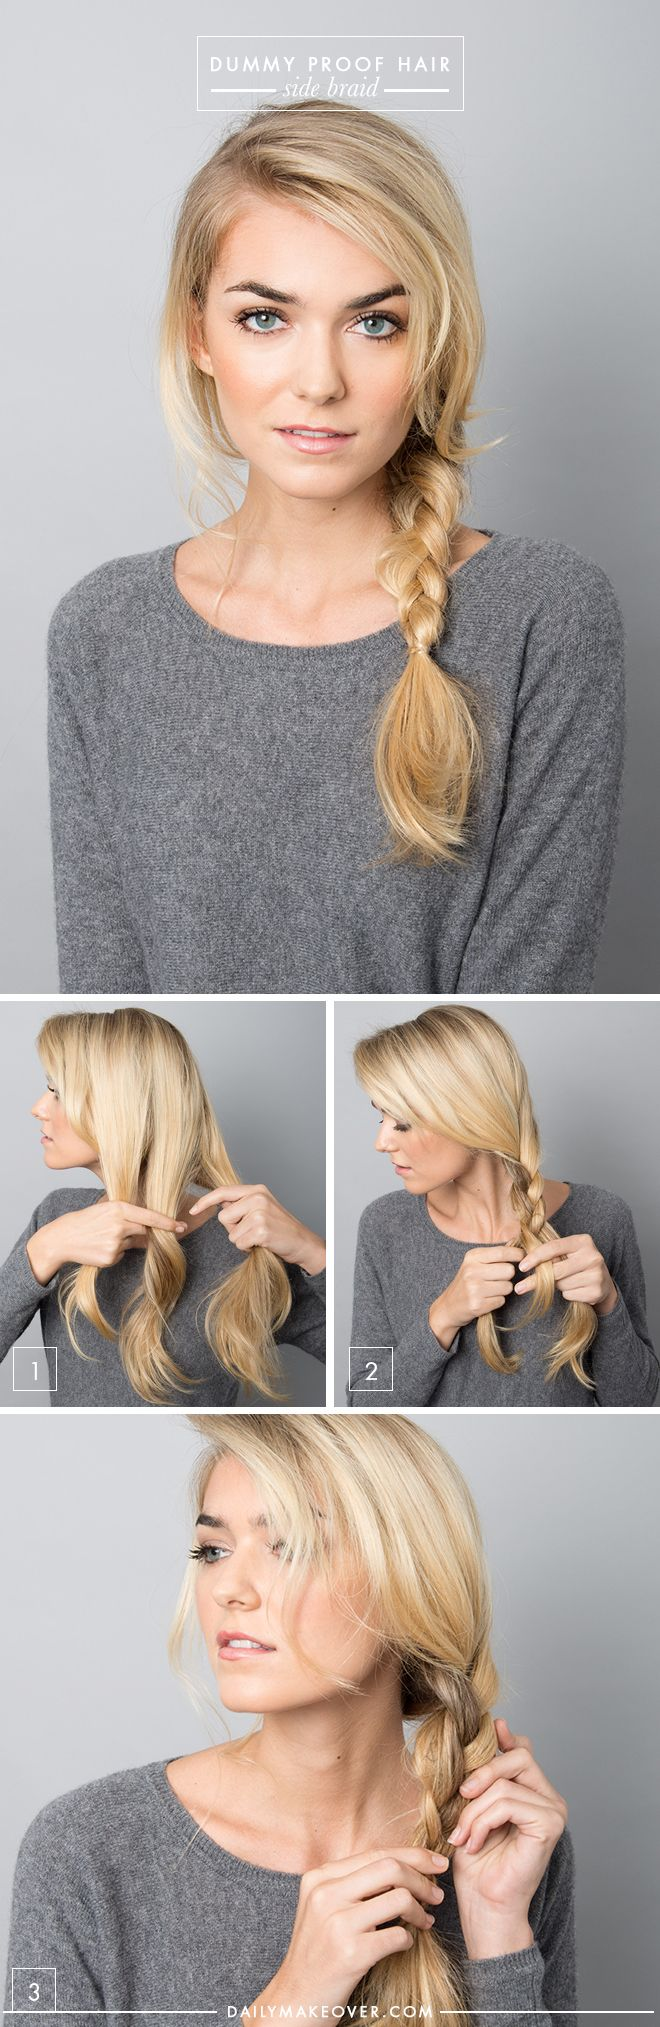 easy side braid hairstyle how-to